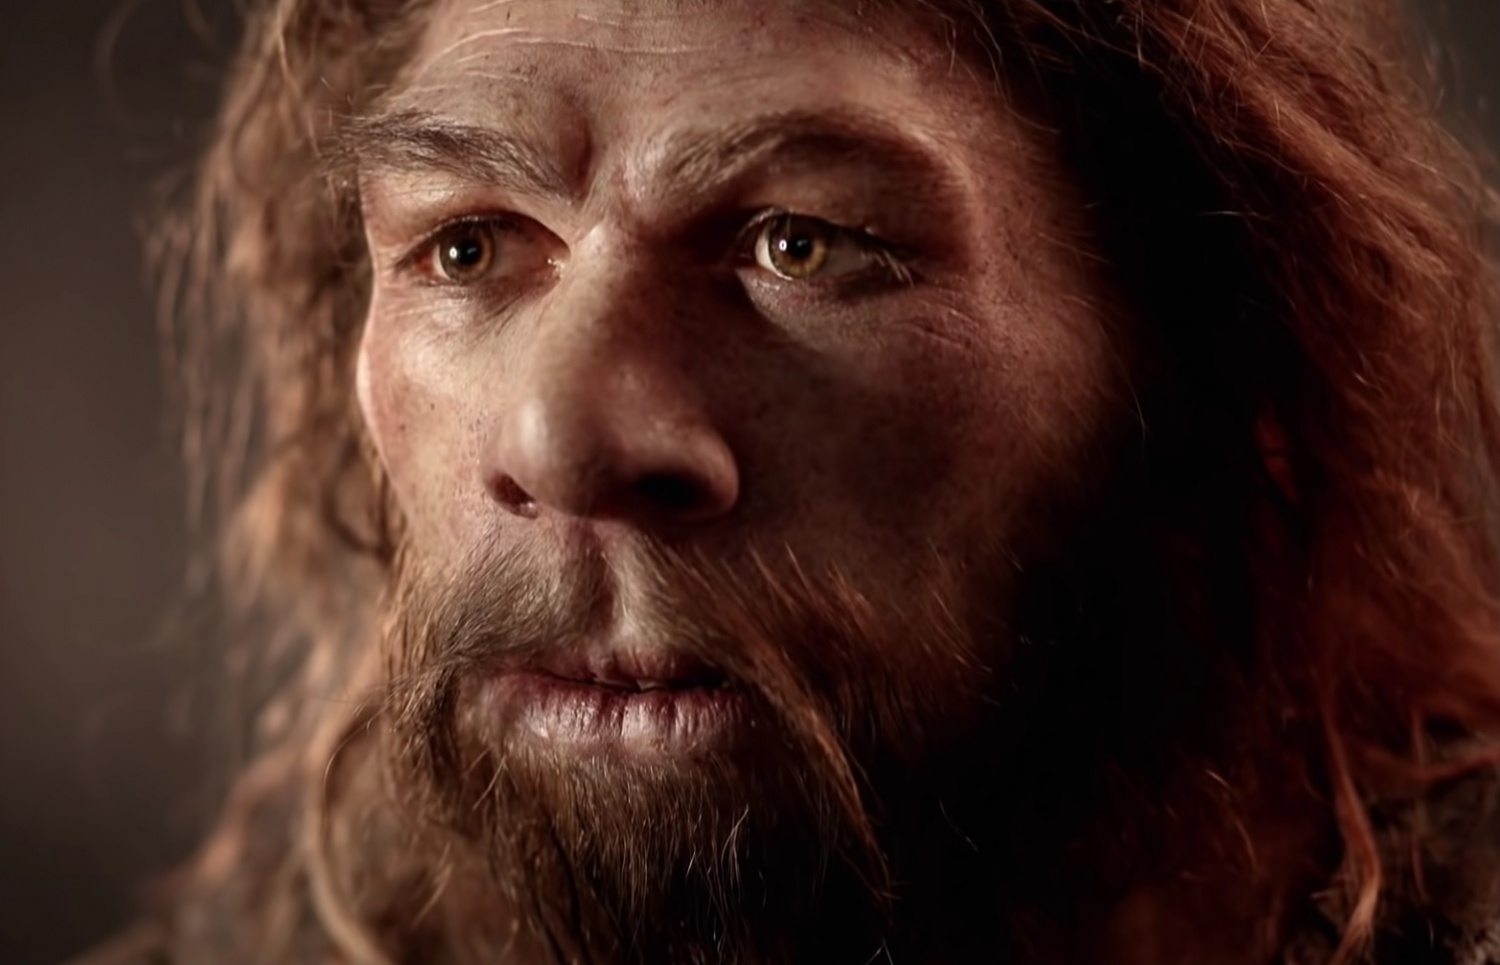 Neanderthal Gene Variants Could Dictate Your Risk of Acquiring COVID-19, Study Says